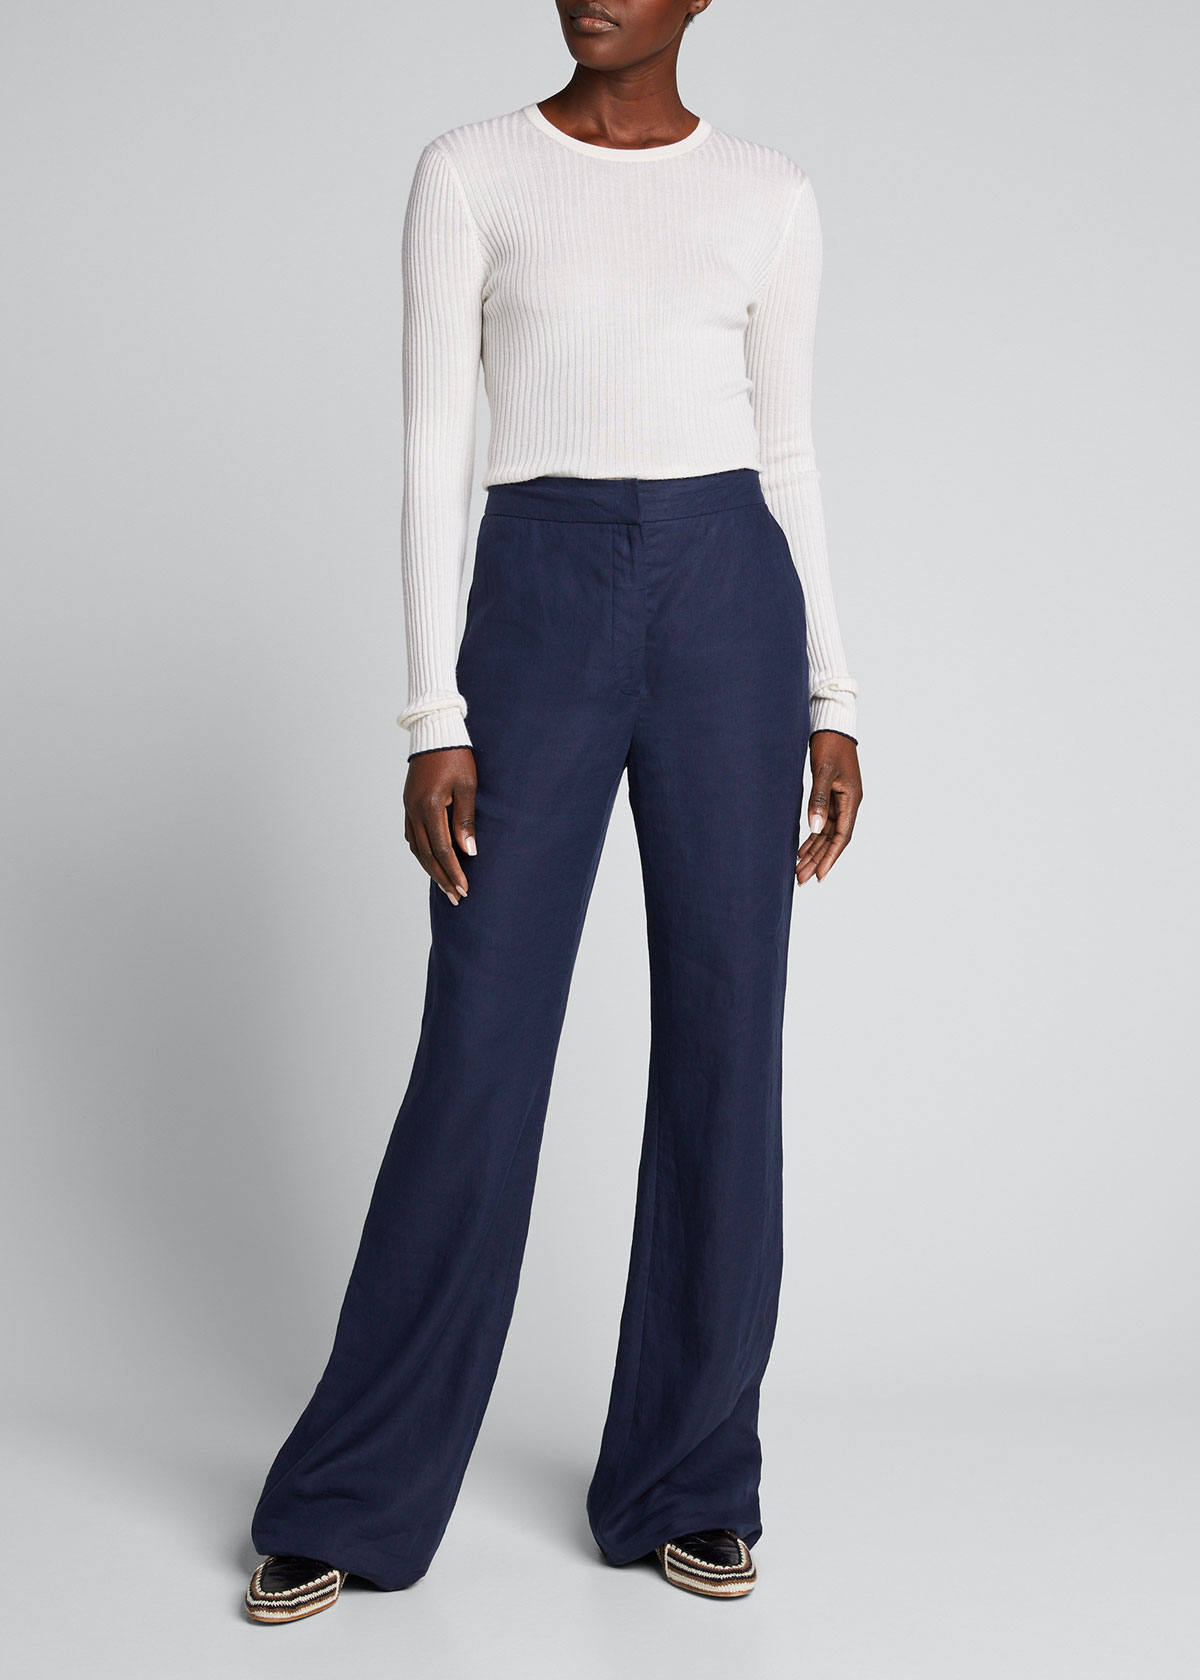 Gabriela Hearst BROWNING RIBBED CASHMERE-SILK SWEATER